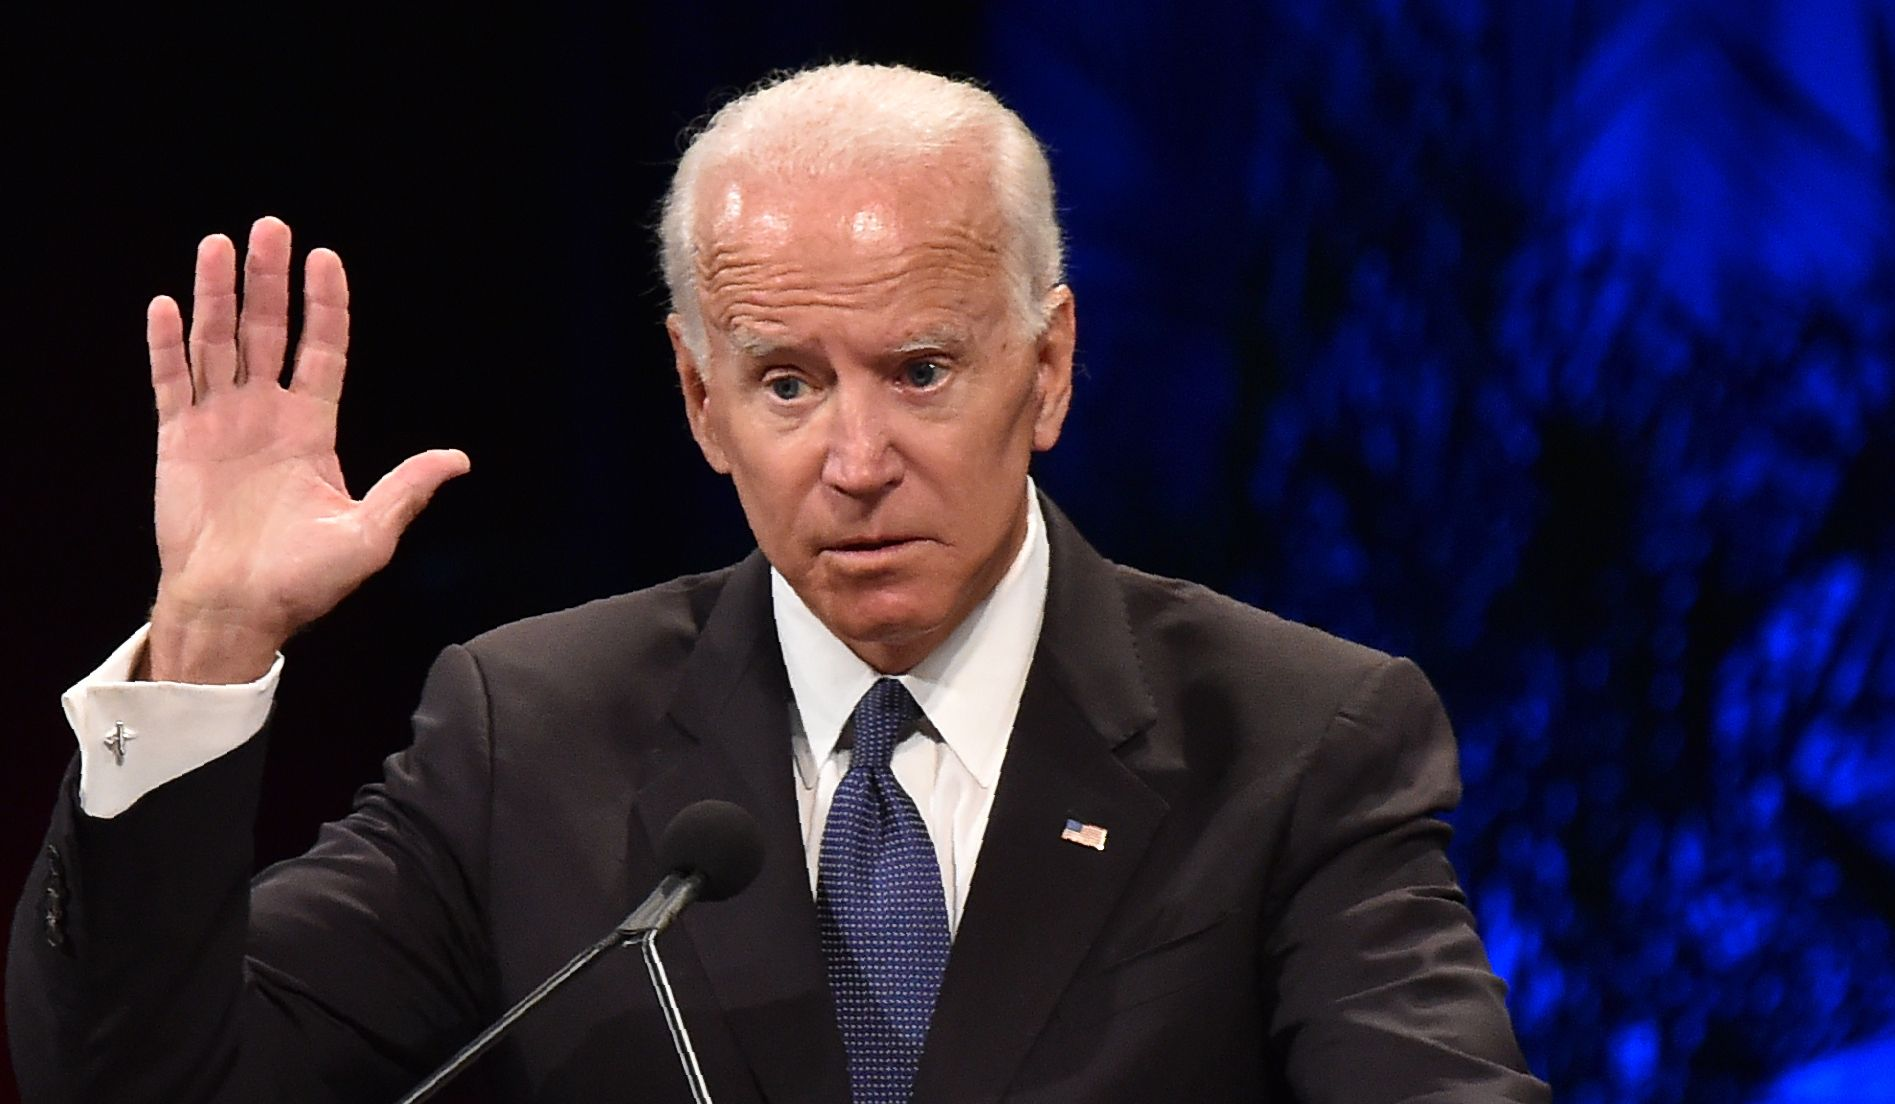 Former Vice President Joe Biden Jumps Into White House Race The Washington Post